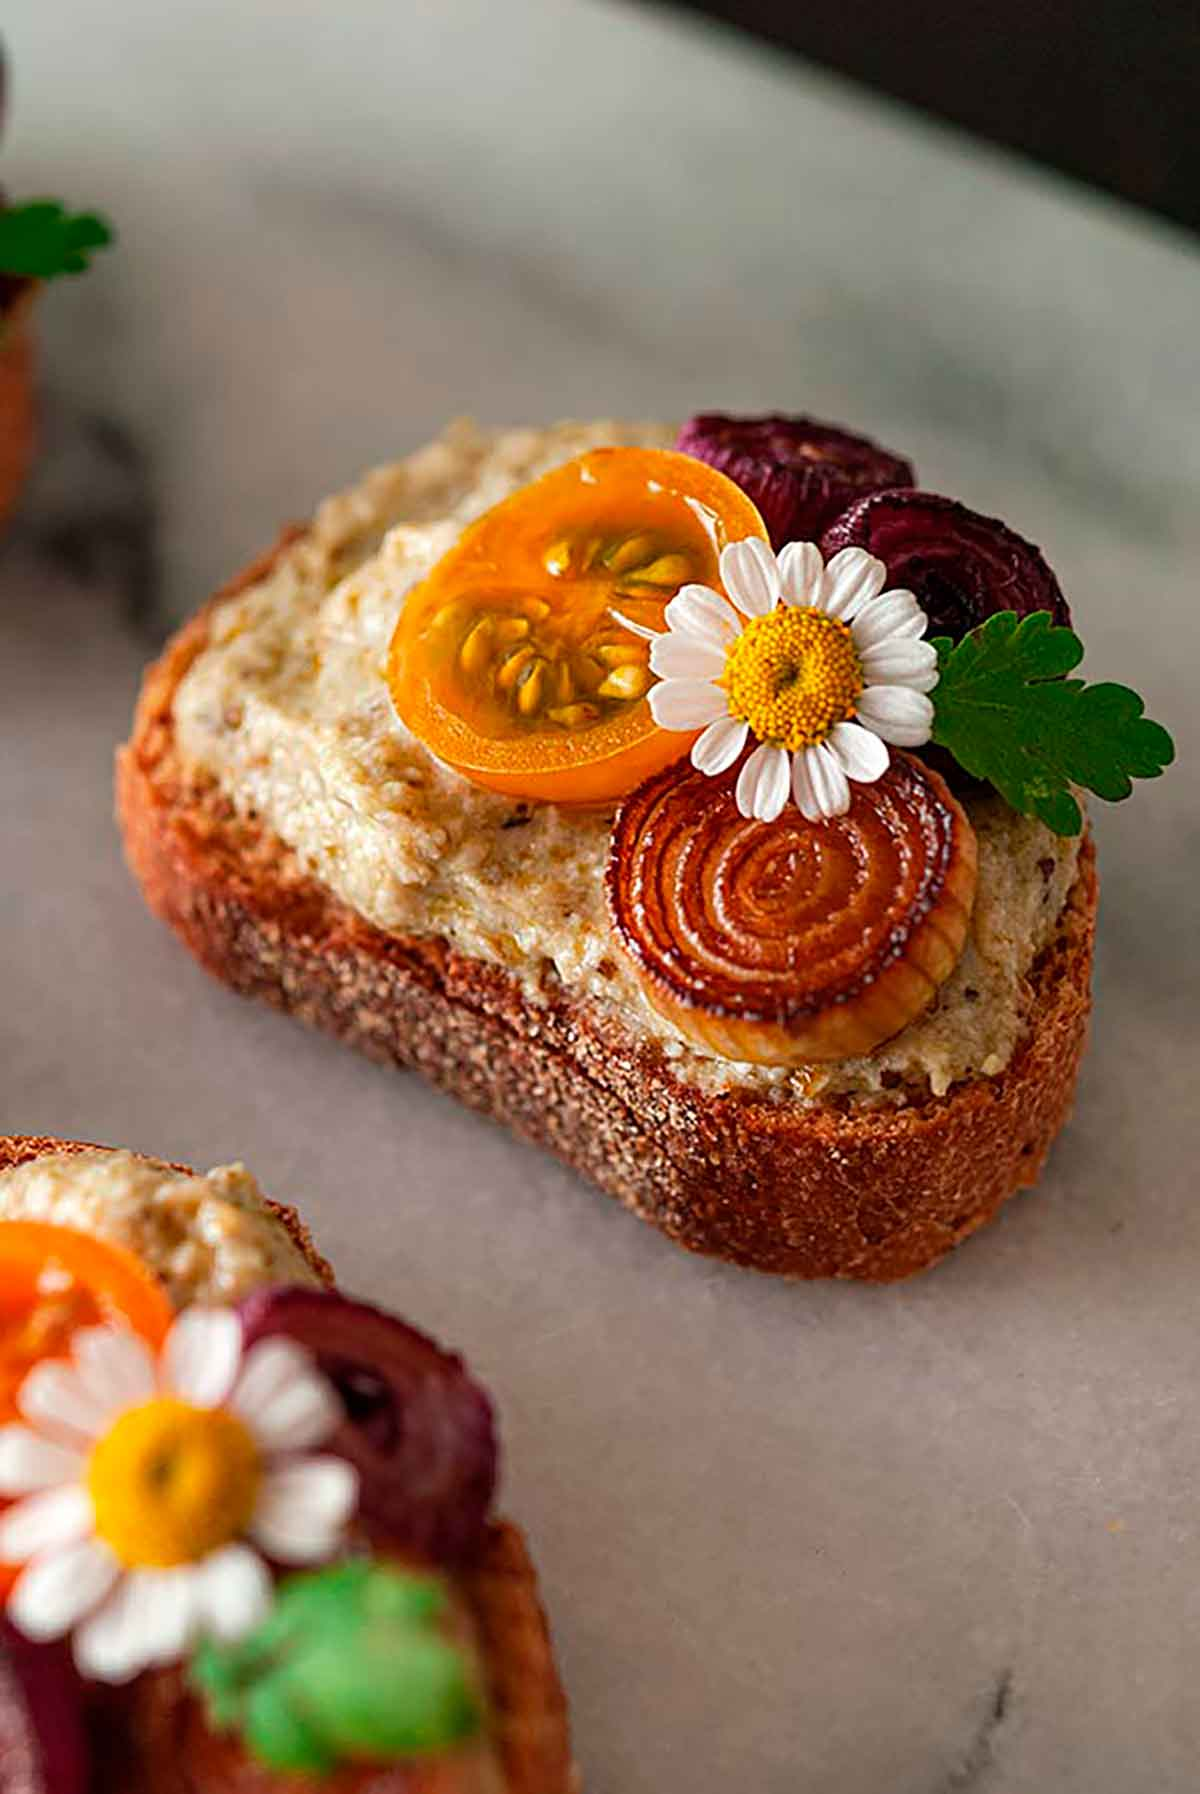 A pesto crostini with onions, tomato and small flower on a marble plate.